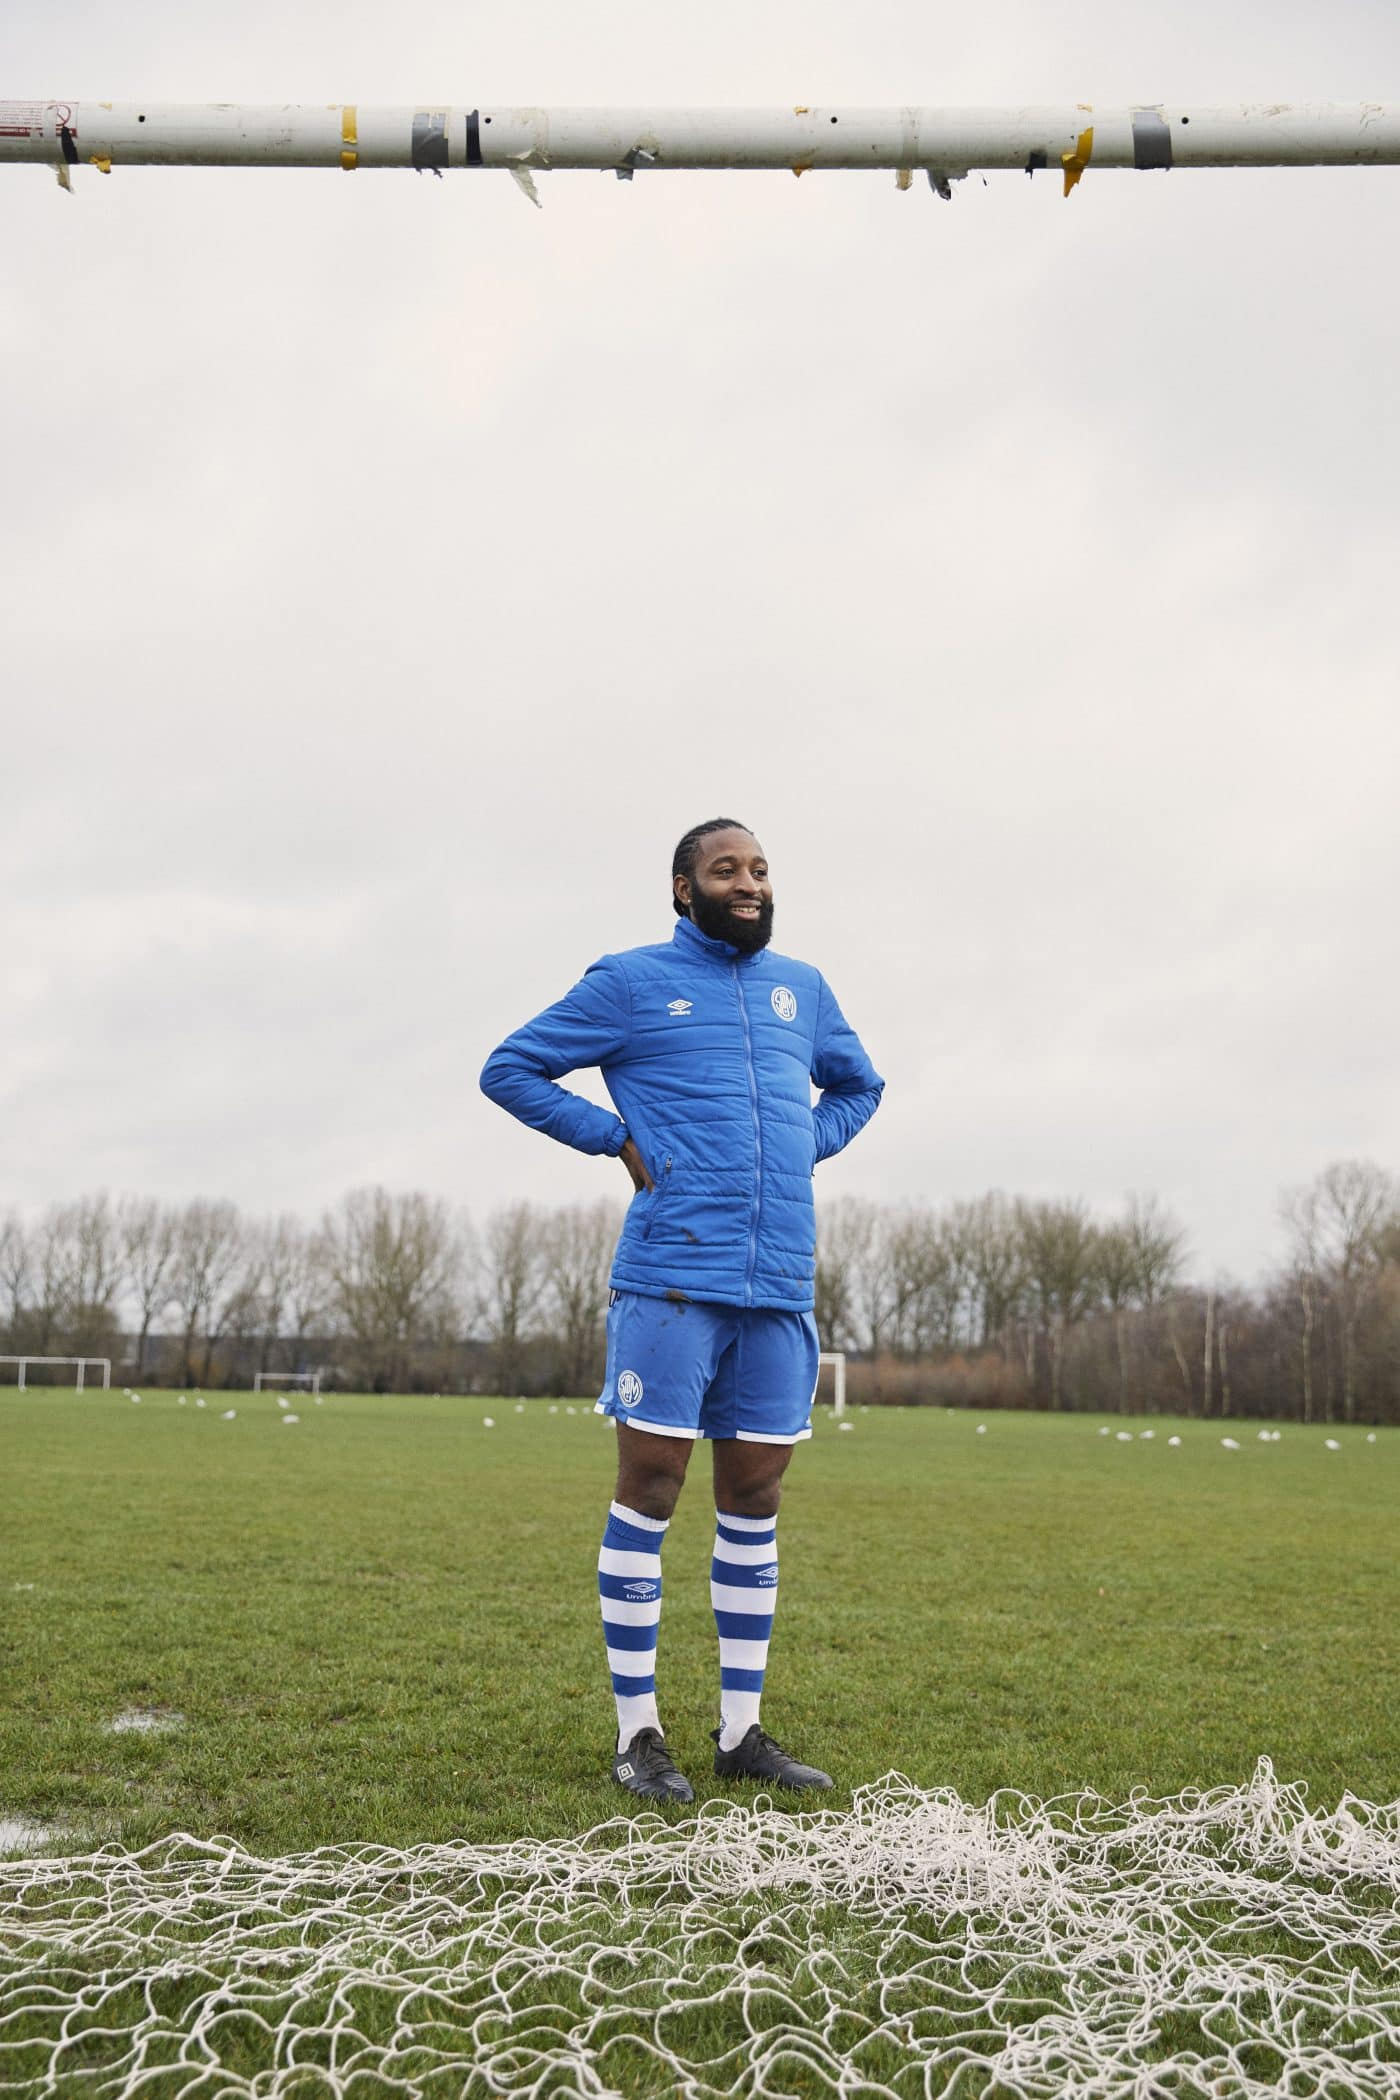 campagne-umbro-our-game-is-not-just-for-pros-footpack-4